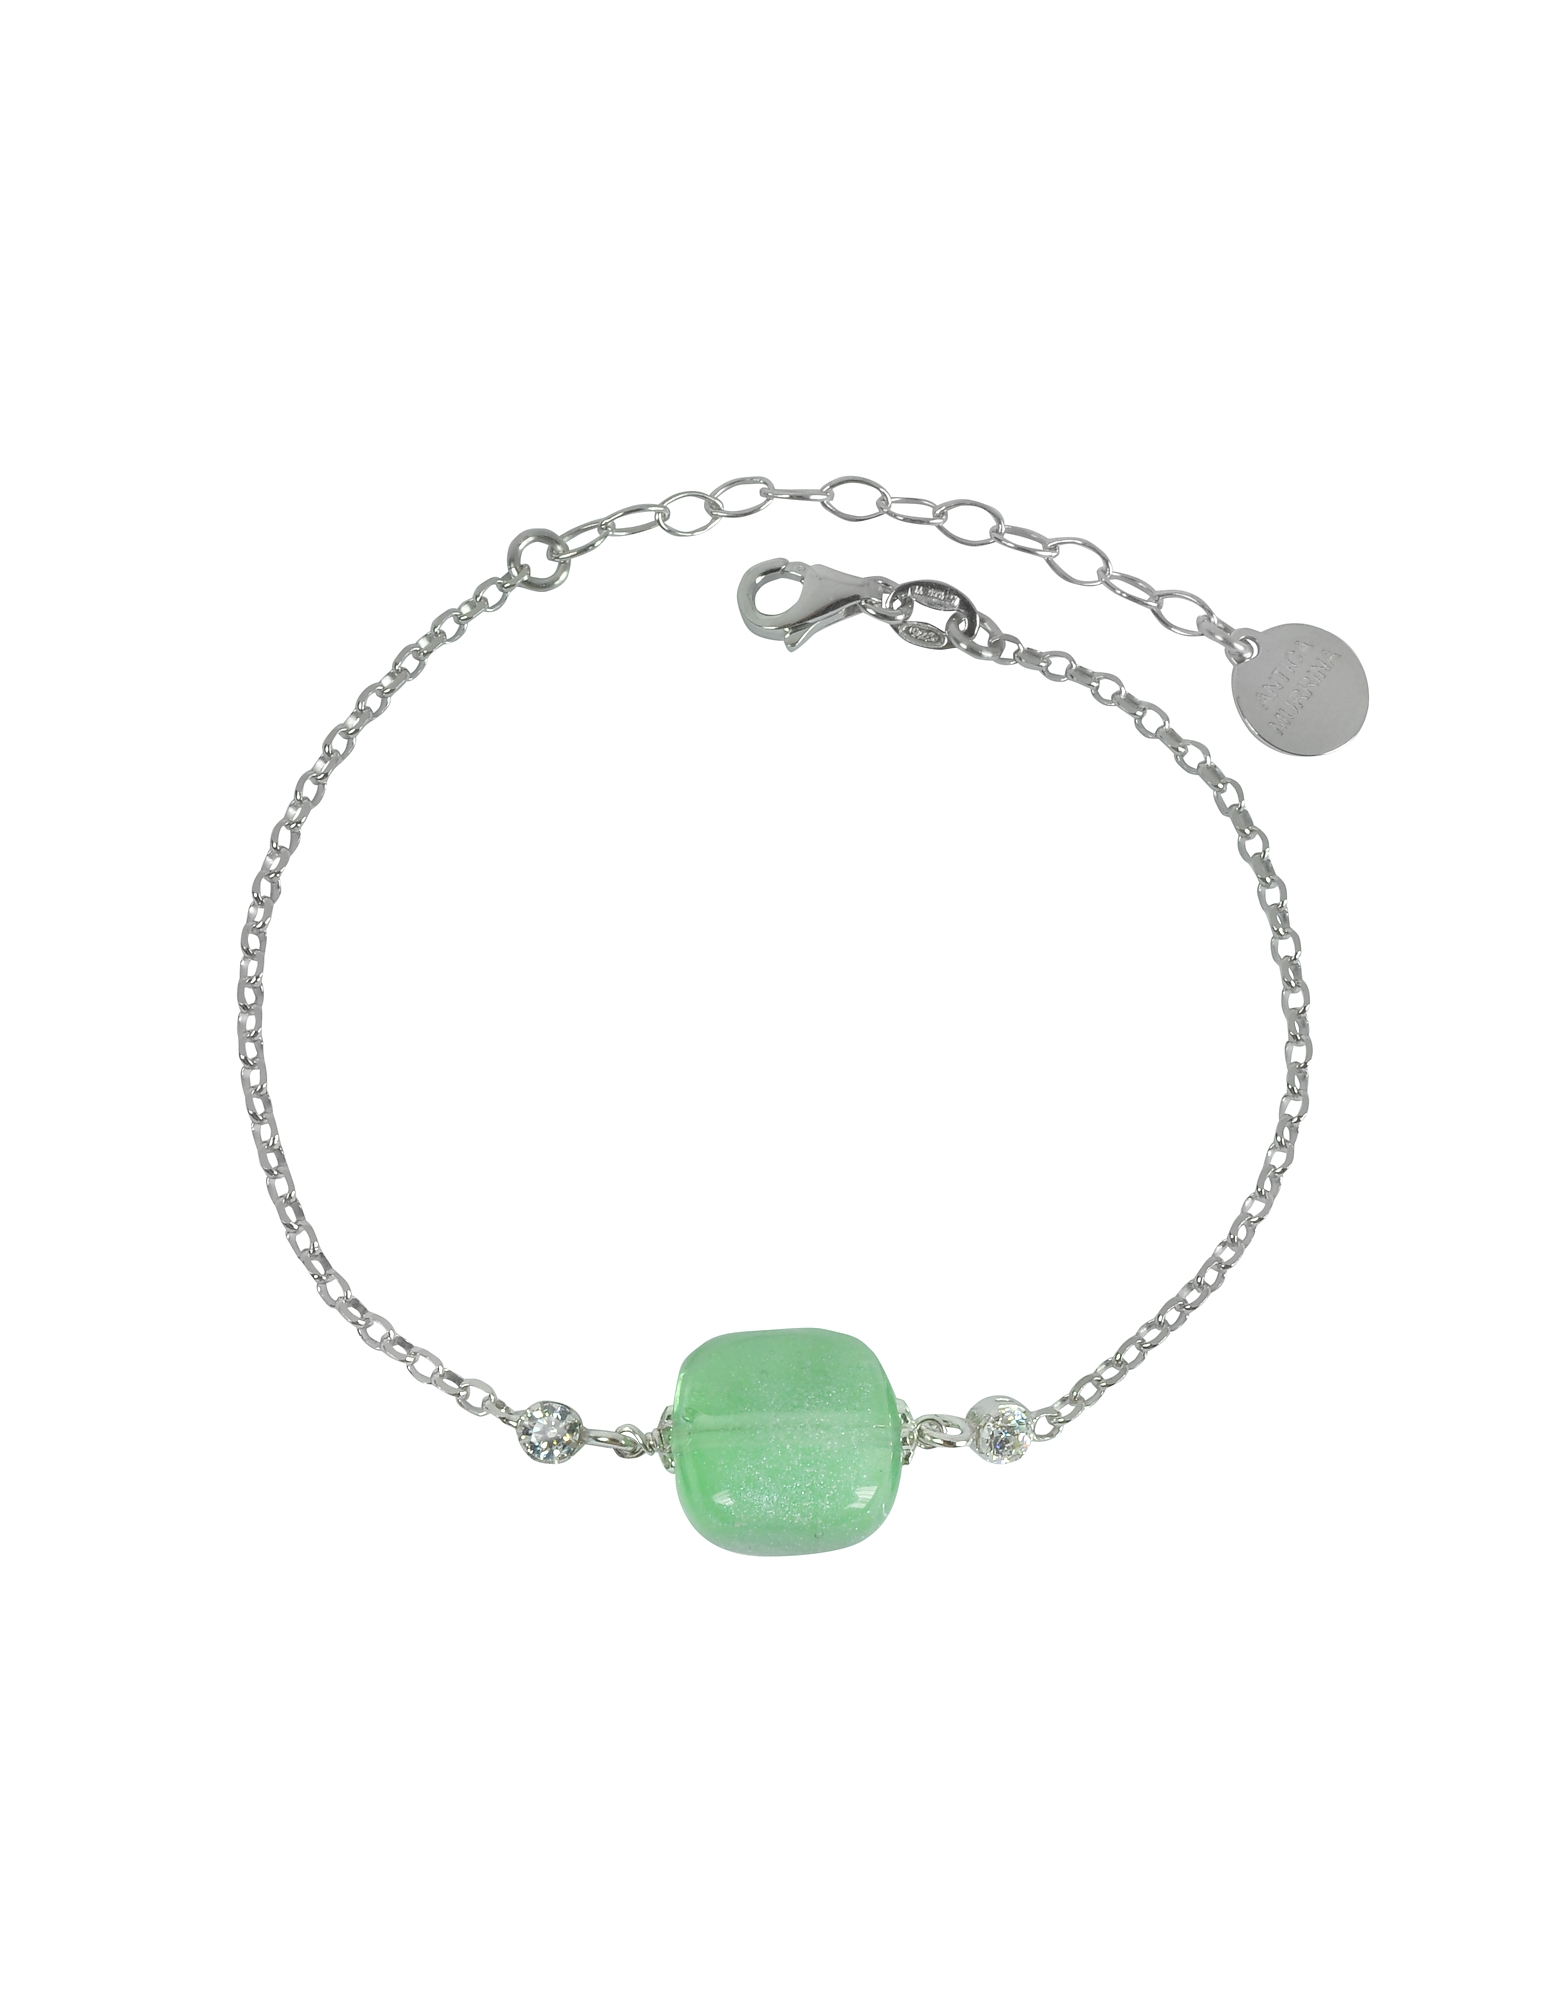 Antica Murrina Bracelets, Florinda Green Murano Glass Sterling Silver Bracelet